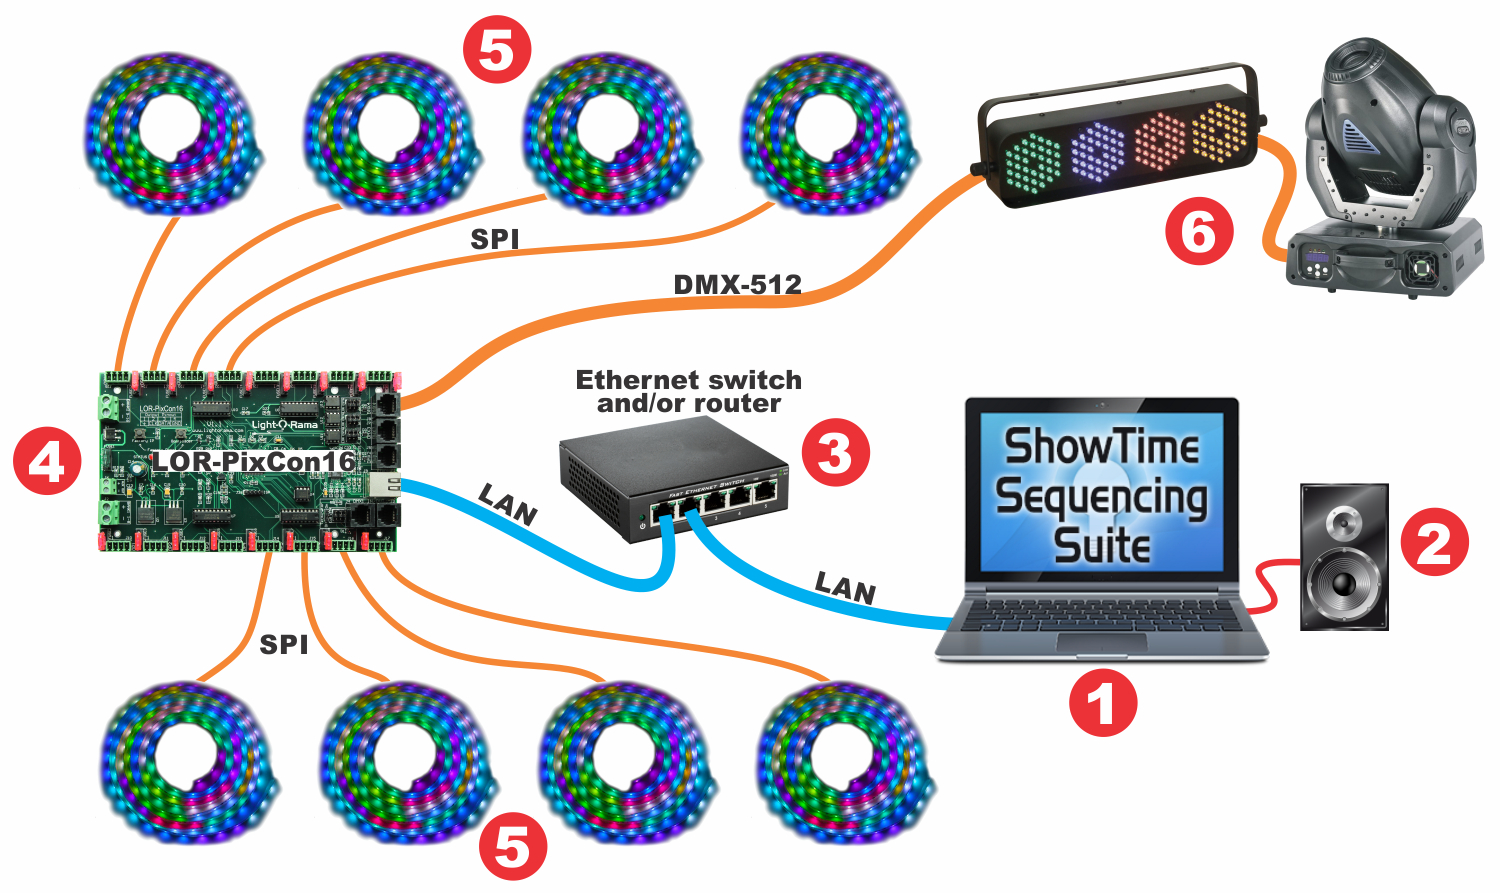 Typical Setups Light O Rama Dmx Daisy Chain Wiring Diagram Basic Layout With Lor Pixcon16 Smart Pixel Controller Using E131 Network